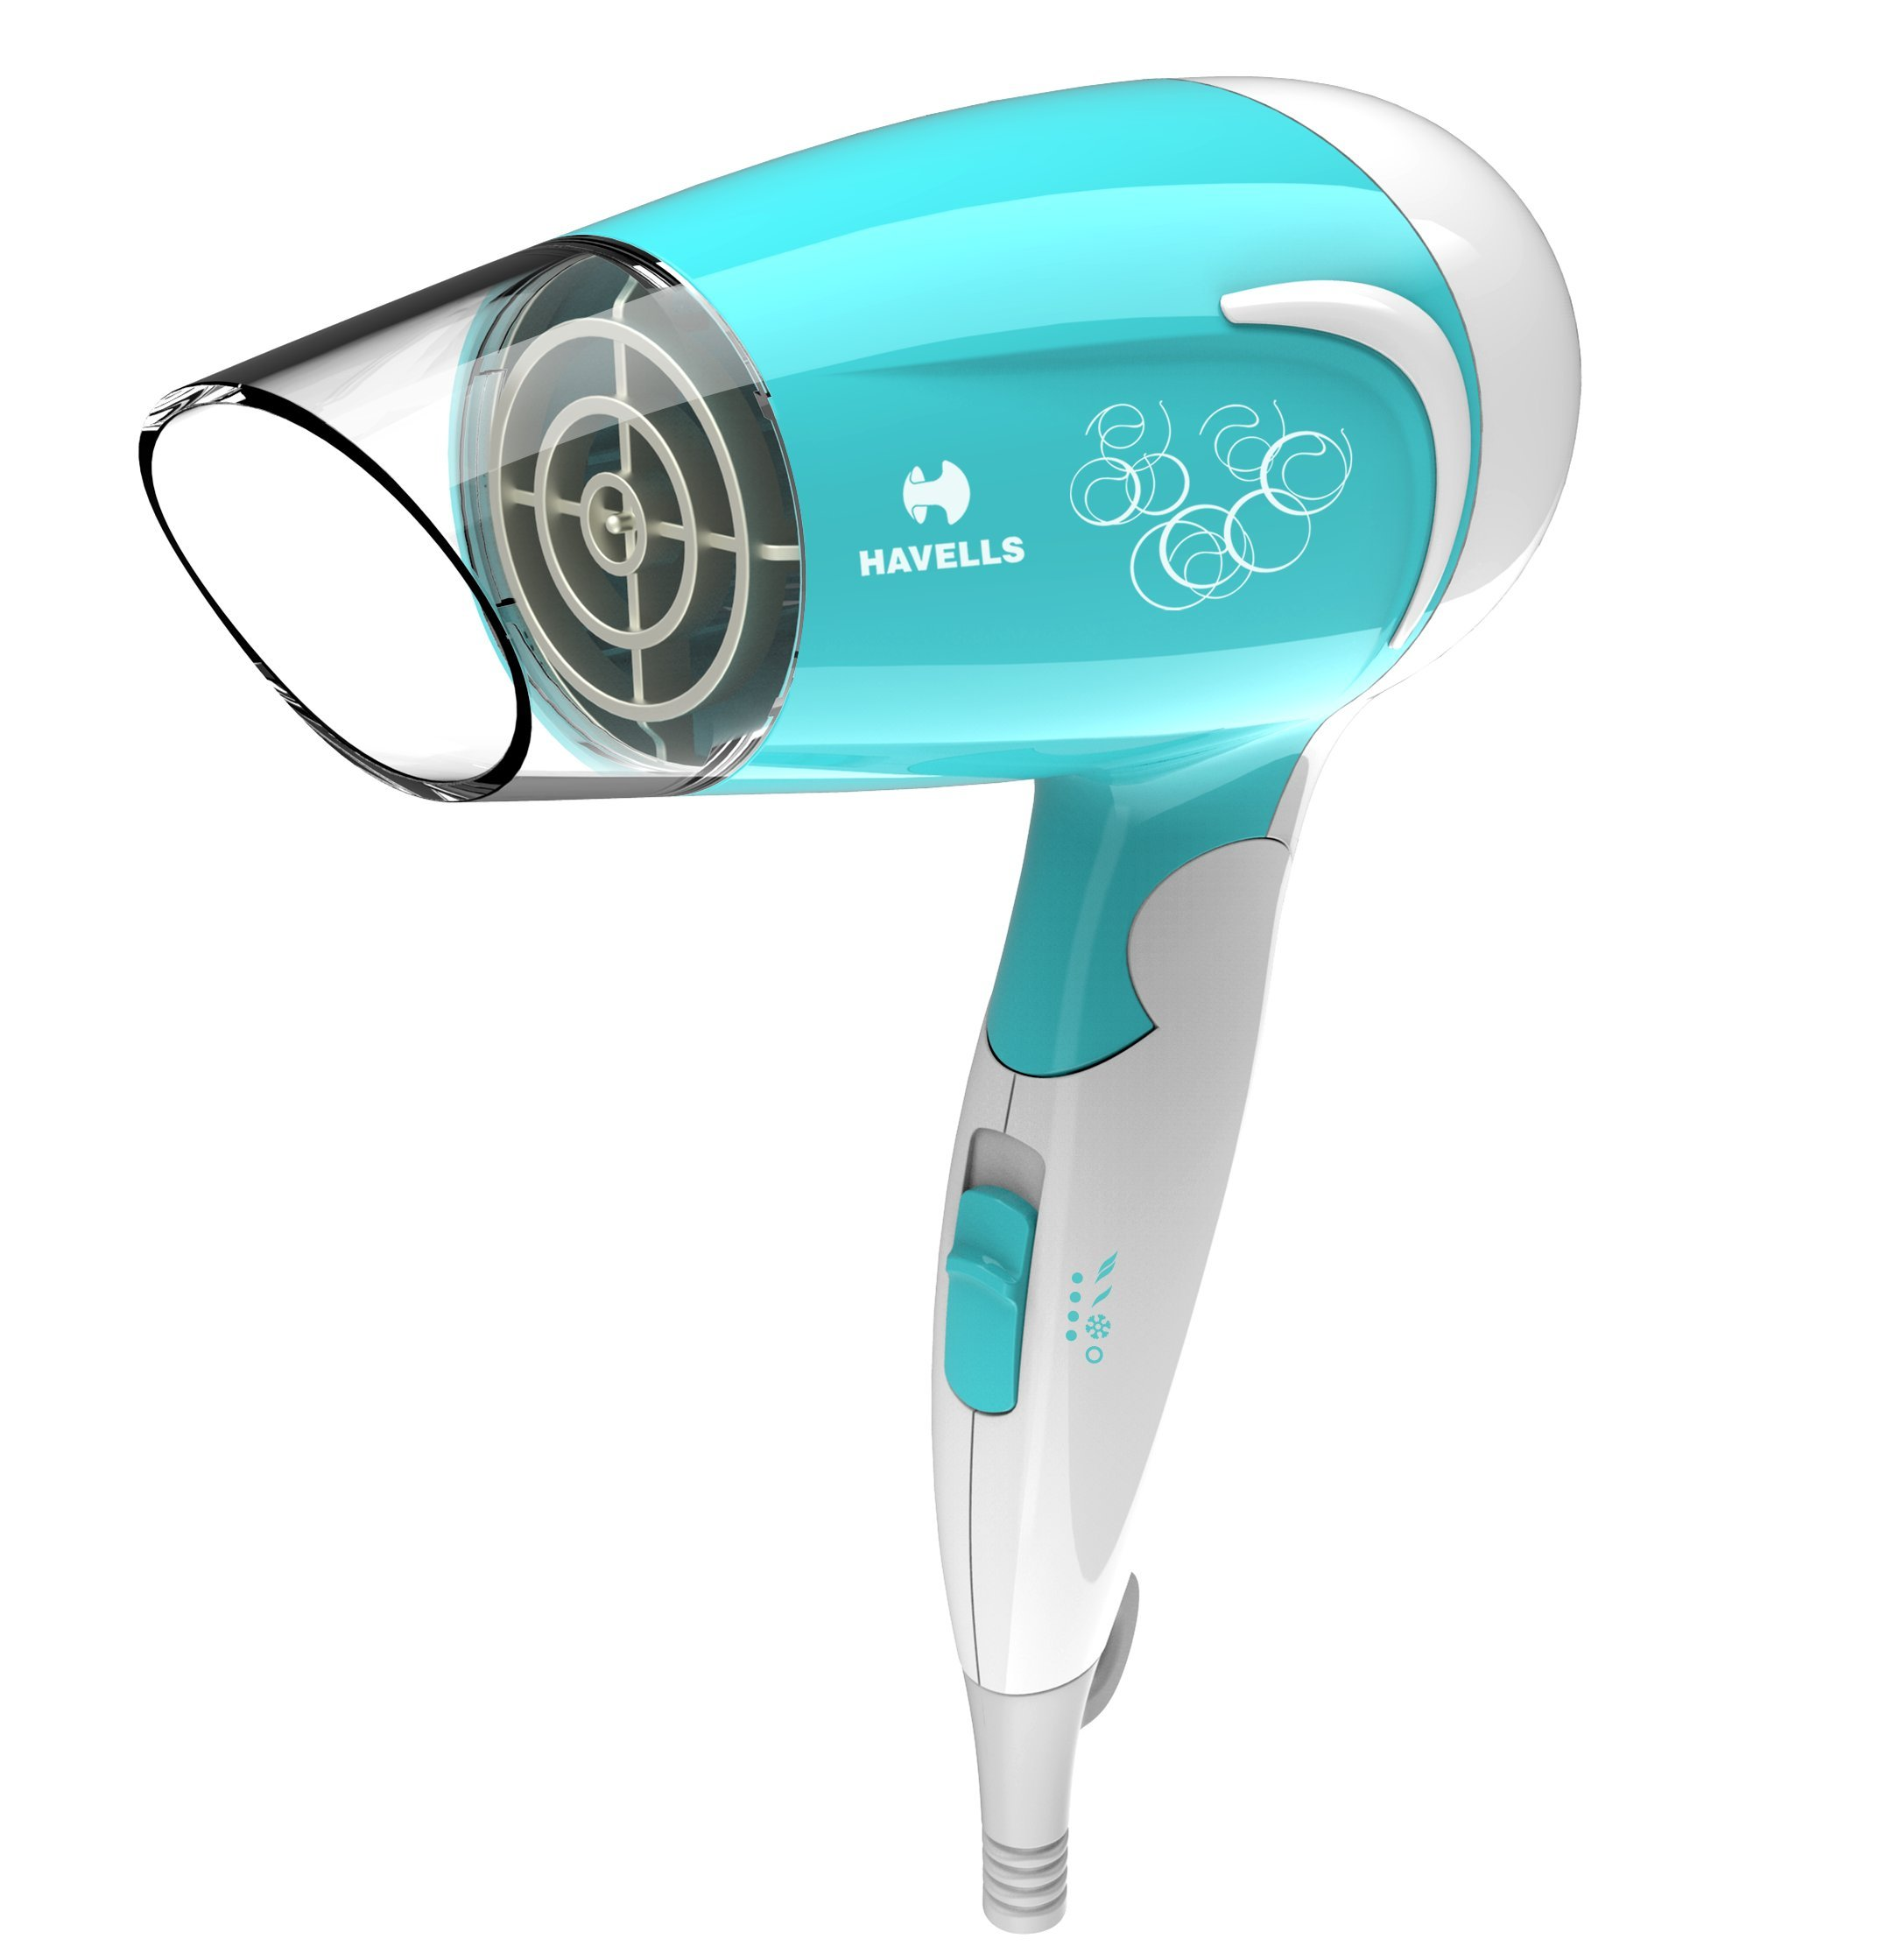 Havells HD3151 1200W Powerful Hair Dryer (Turquoise) product image